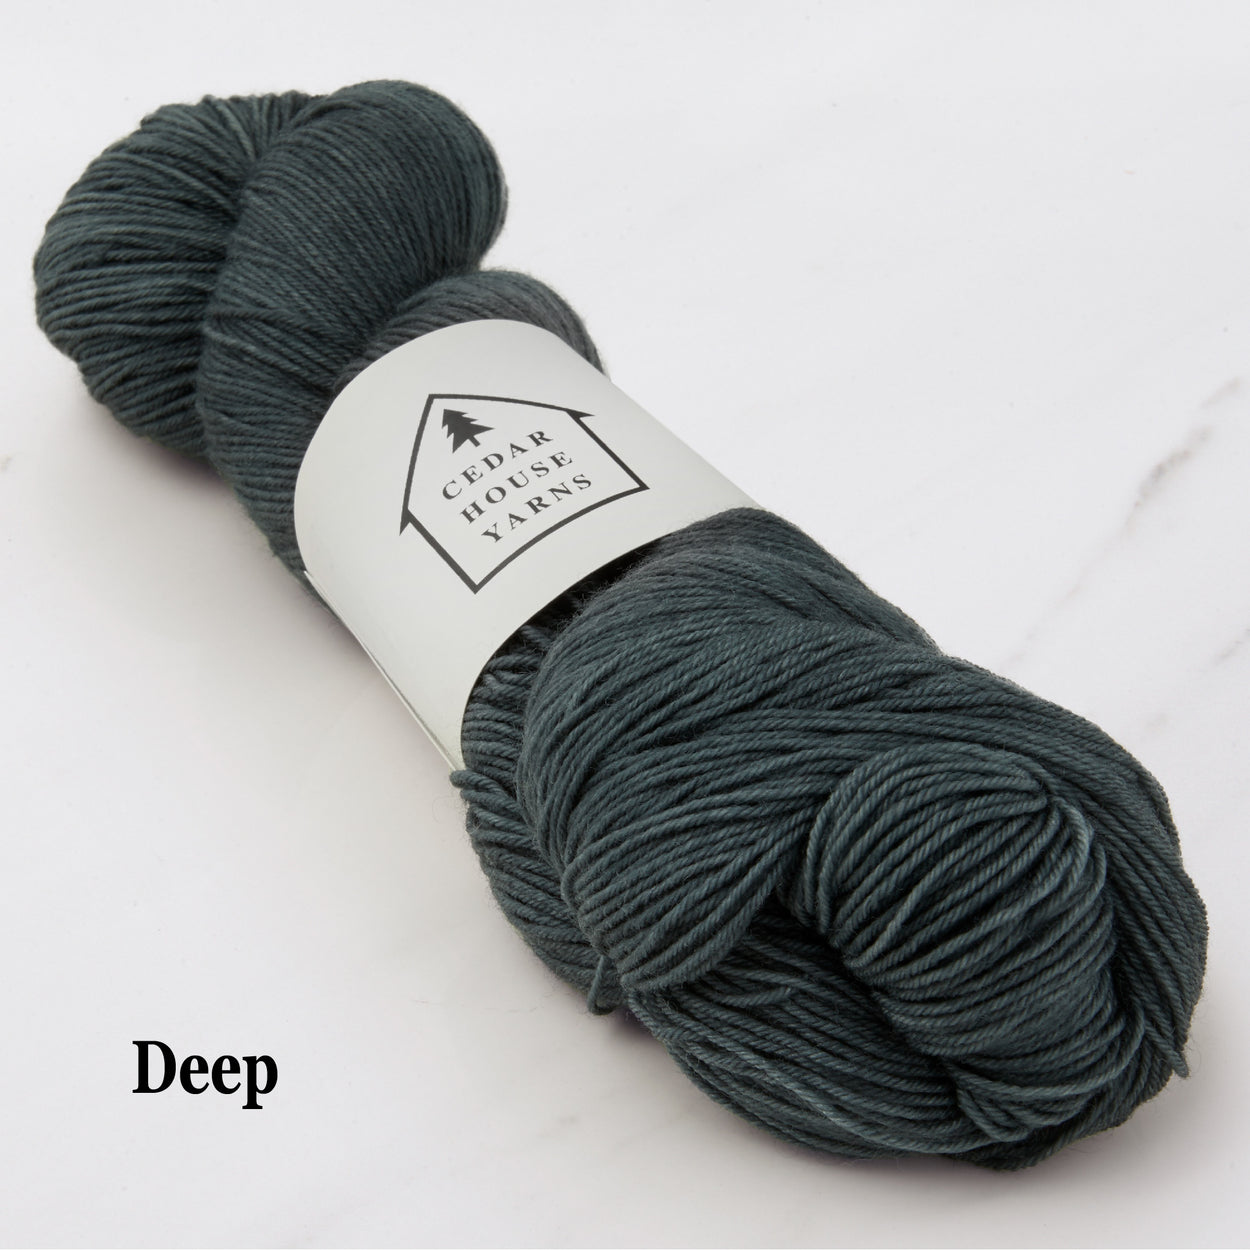 Sapling Sock (75% wool, 25% nylon)